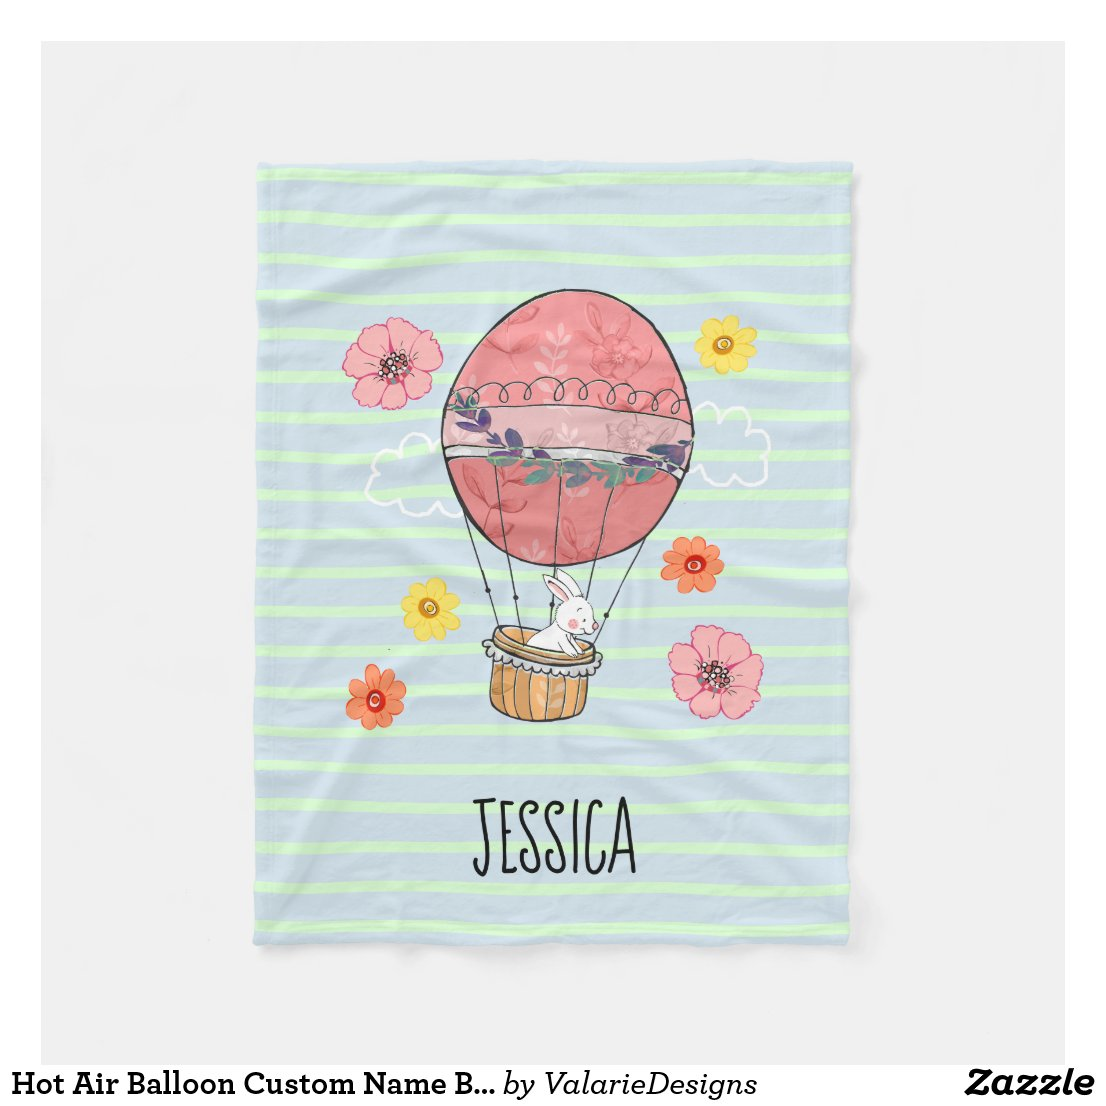 Hot Air Balloon Custom Name Blanket